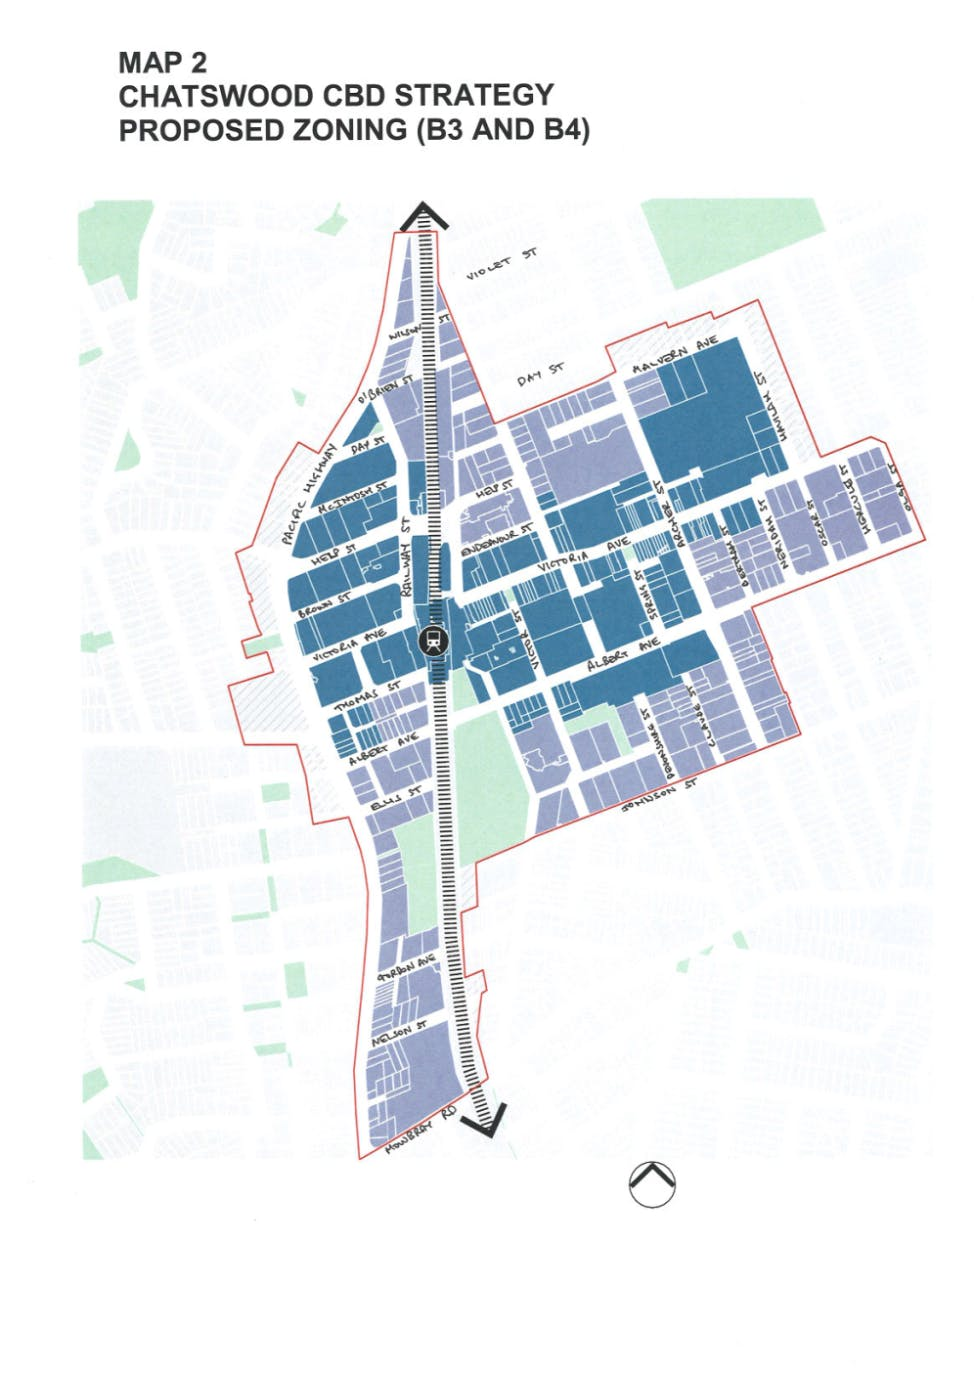 Chatswood CBD Strategy Proposed Zoning (B3 and B4)